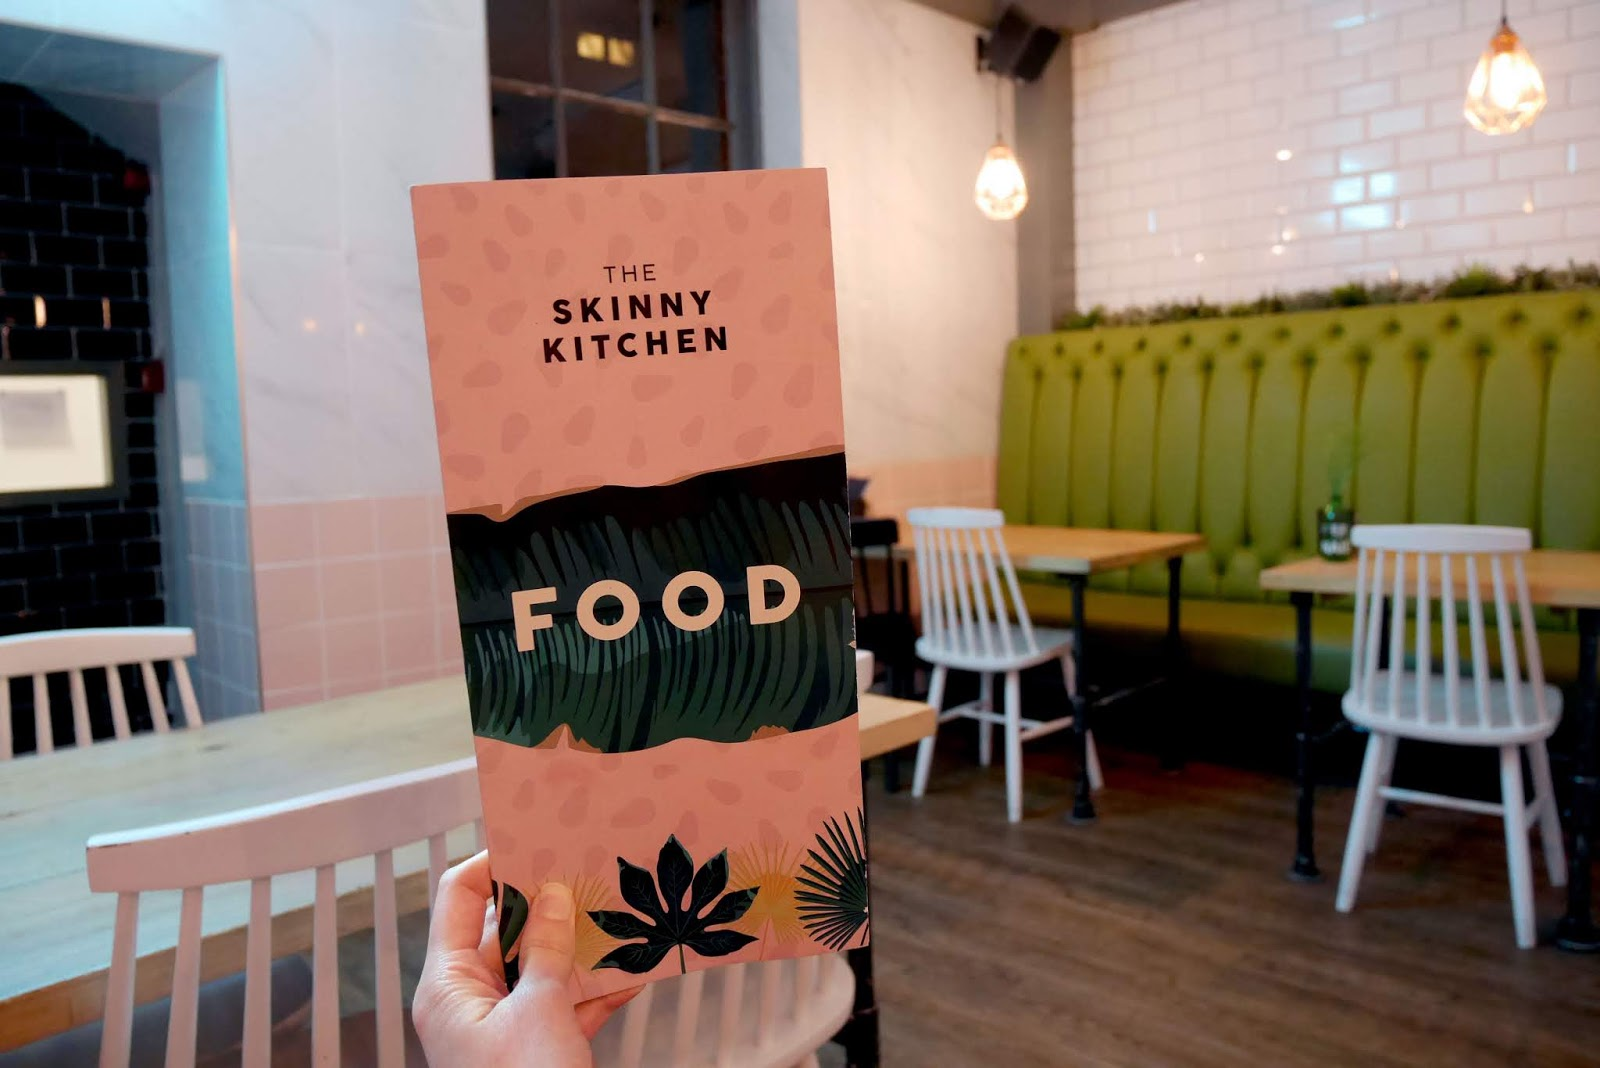 Dining at The Skinny Kitchen in Canterbury, Kent